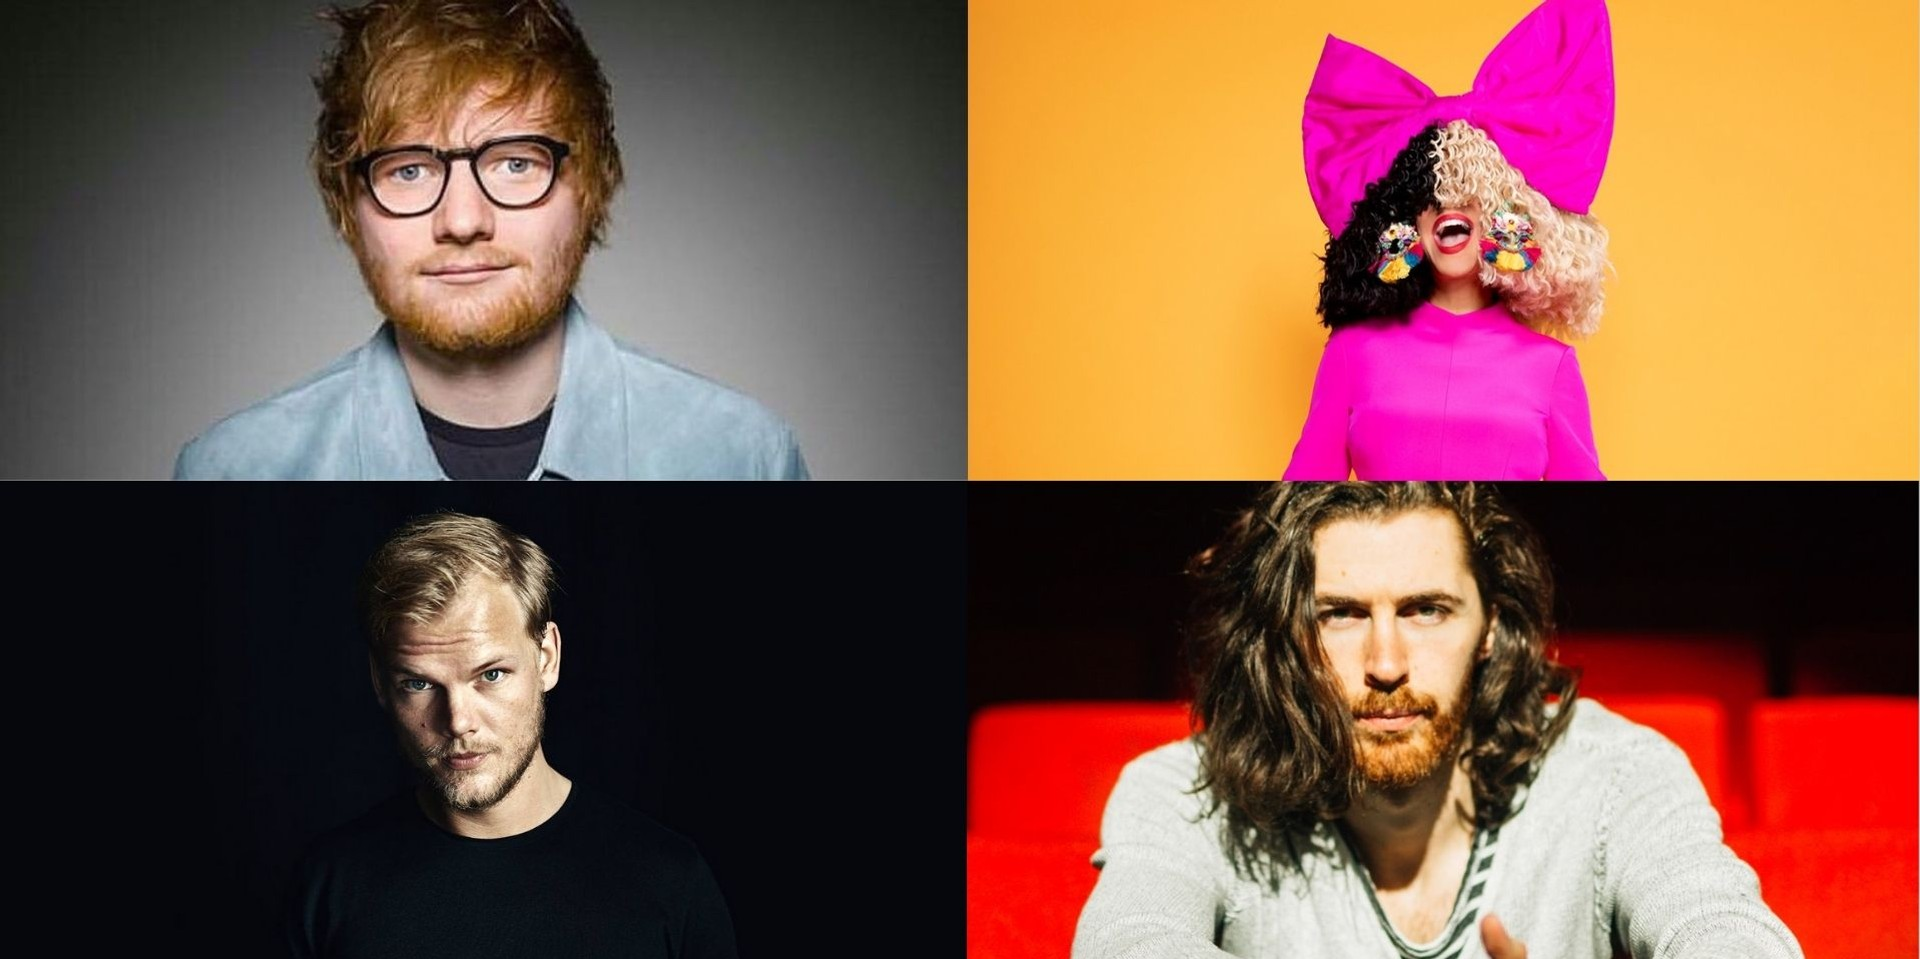 Songs by Ed Sheeran, Avicii, Sia, Hozier, and more included in Top 100 Shazams of all time – listen